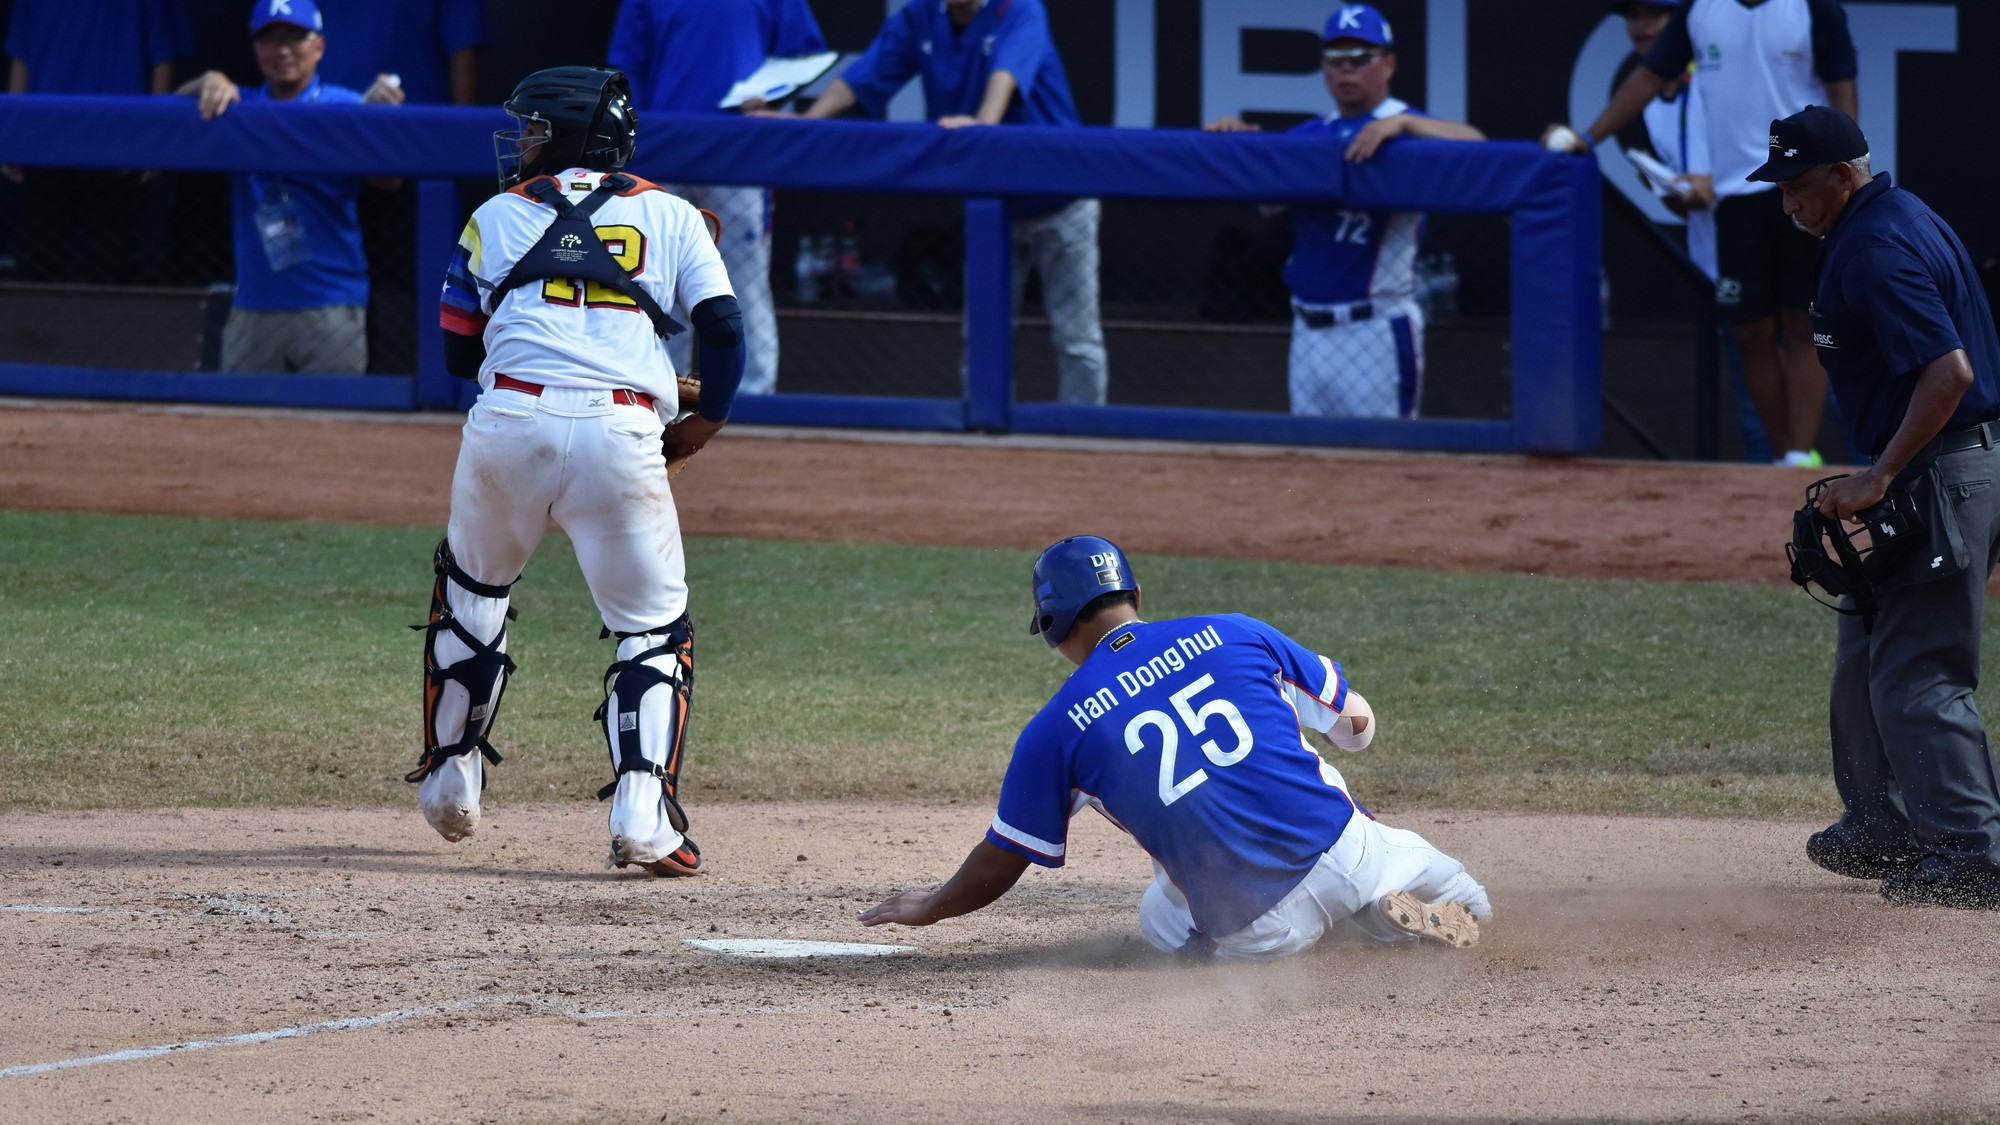 Korea tied it in the top of the seventh against Venezuela's bull pen